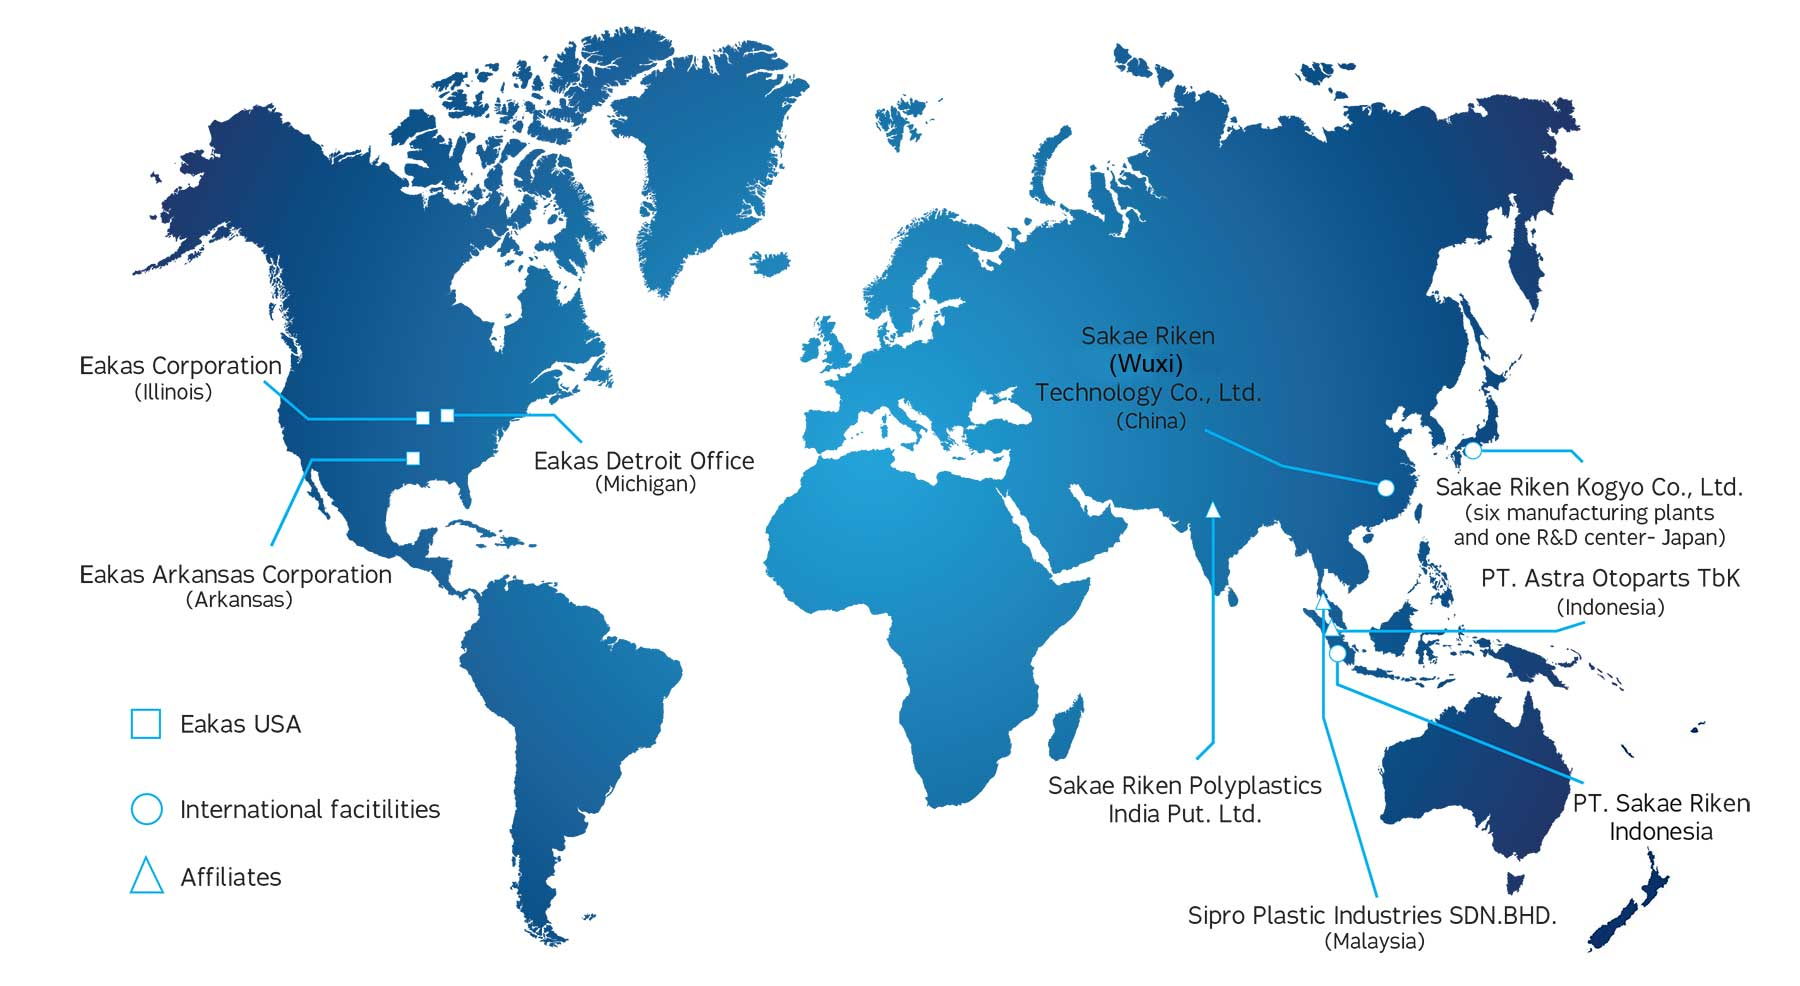 Eakas Corporation locations worldwide